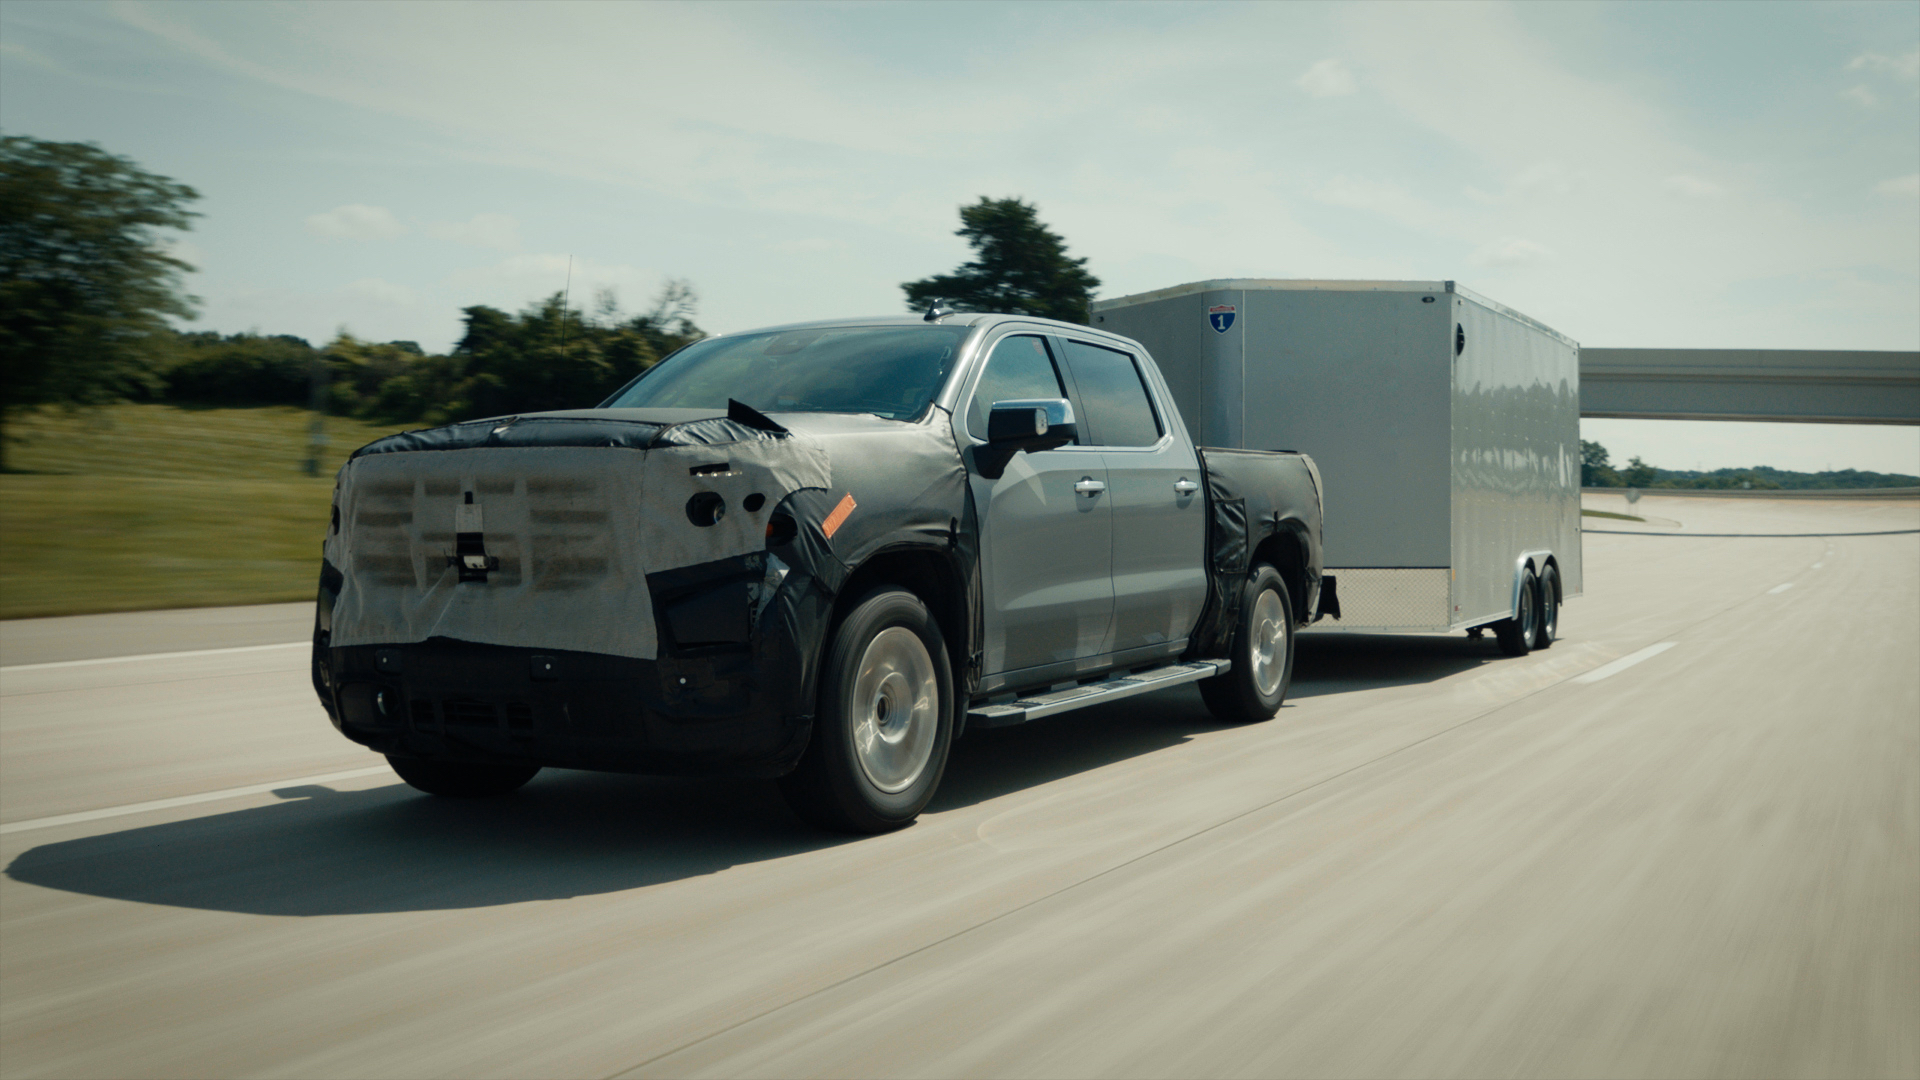 Super Cruise Hands-Free Towing Coming to the 2022 GMC Sierra 1500, and We Drive It First!